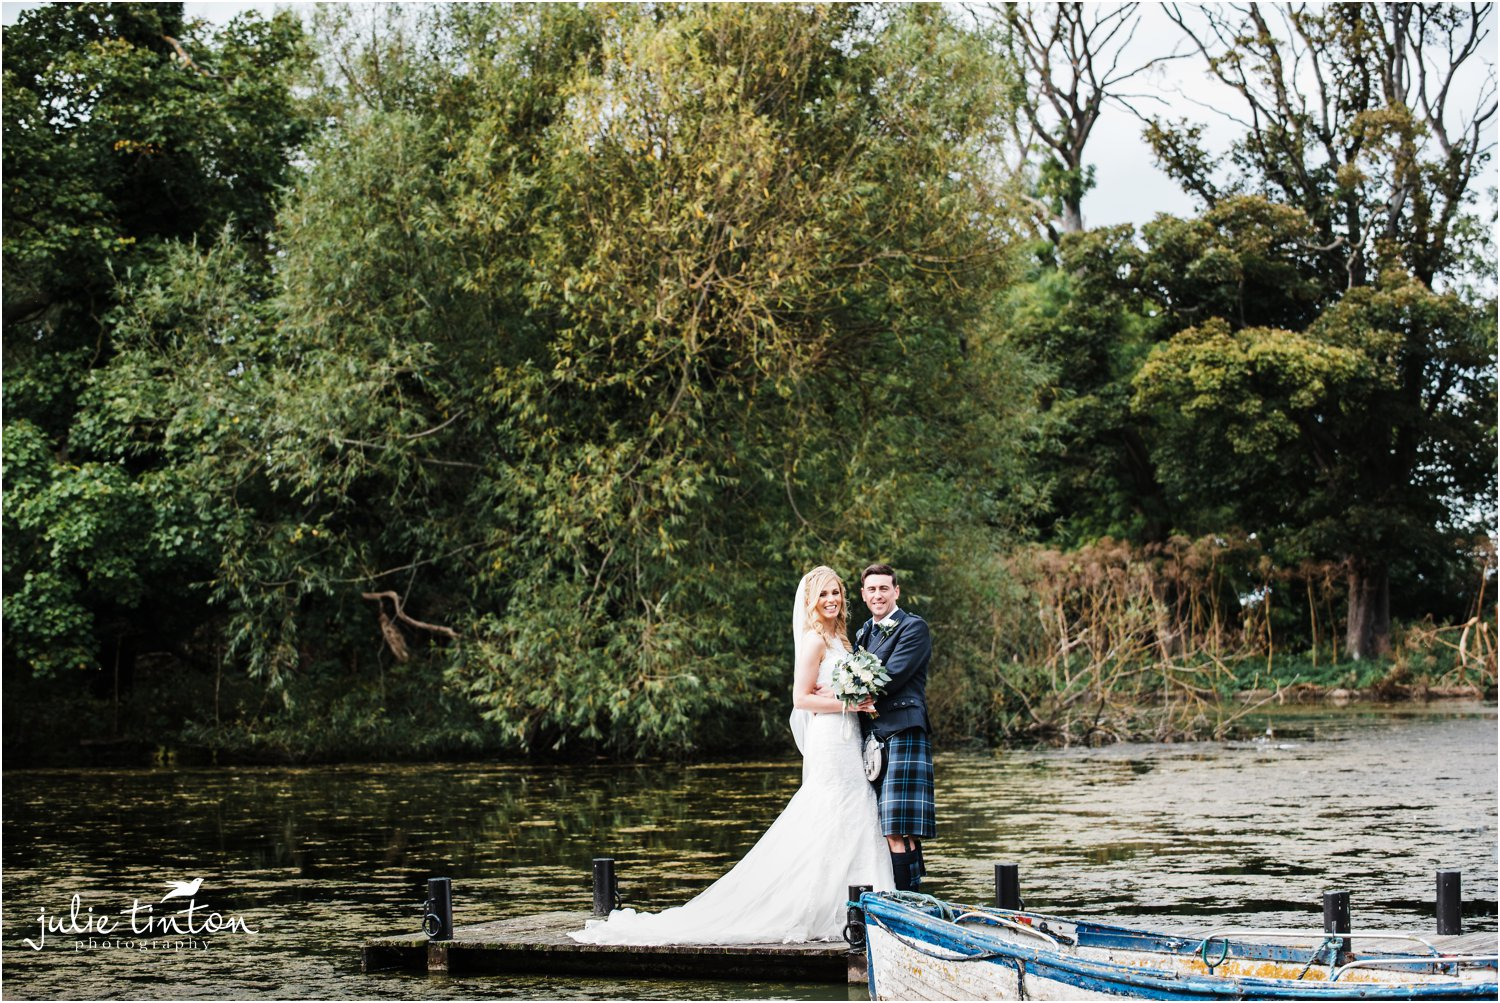 Bride and Groom at Broxmouth Park lake